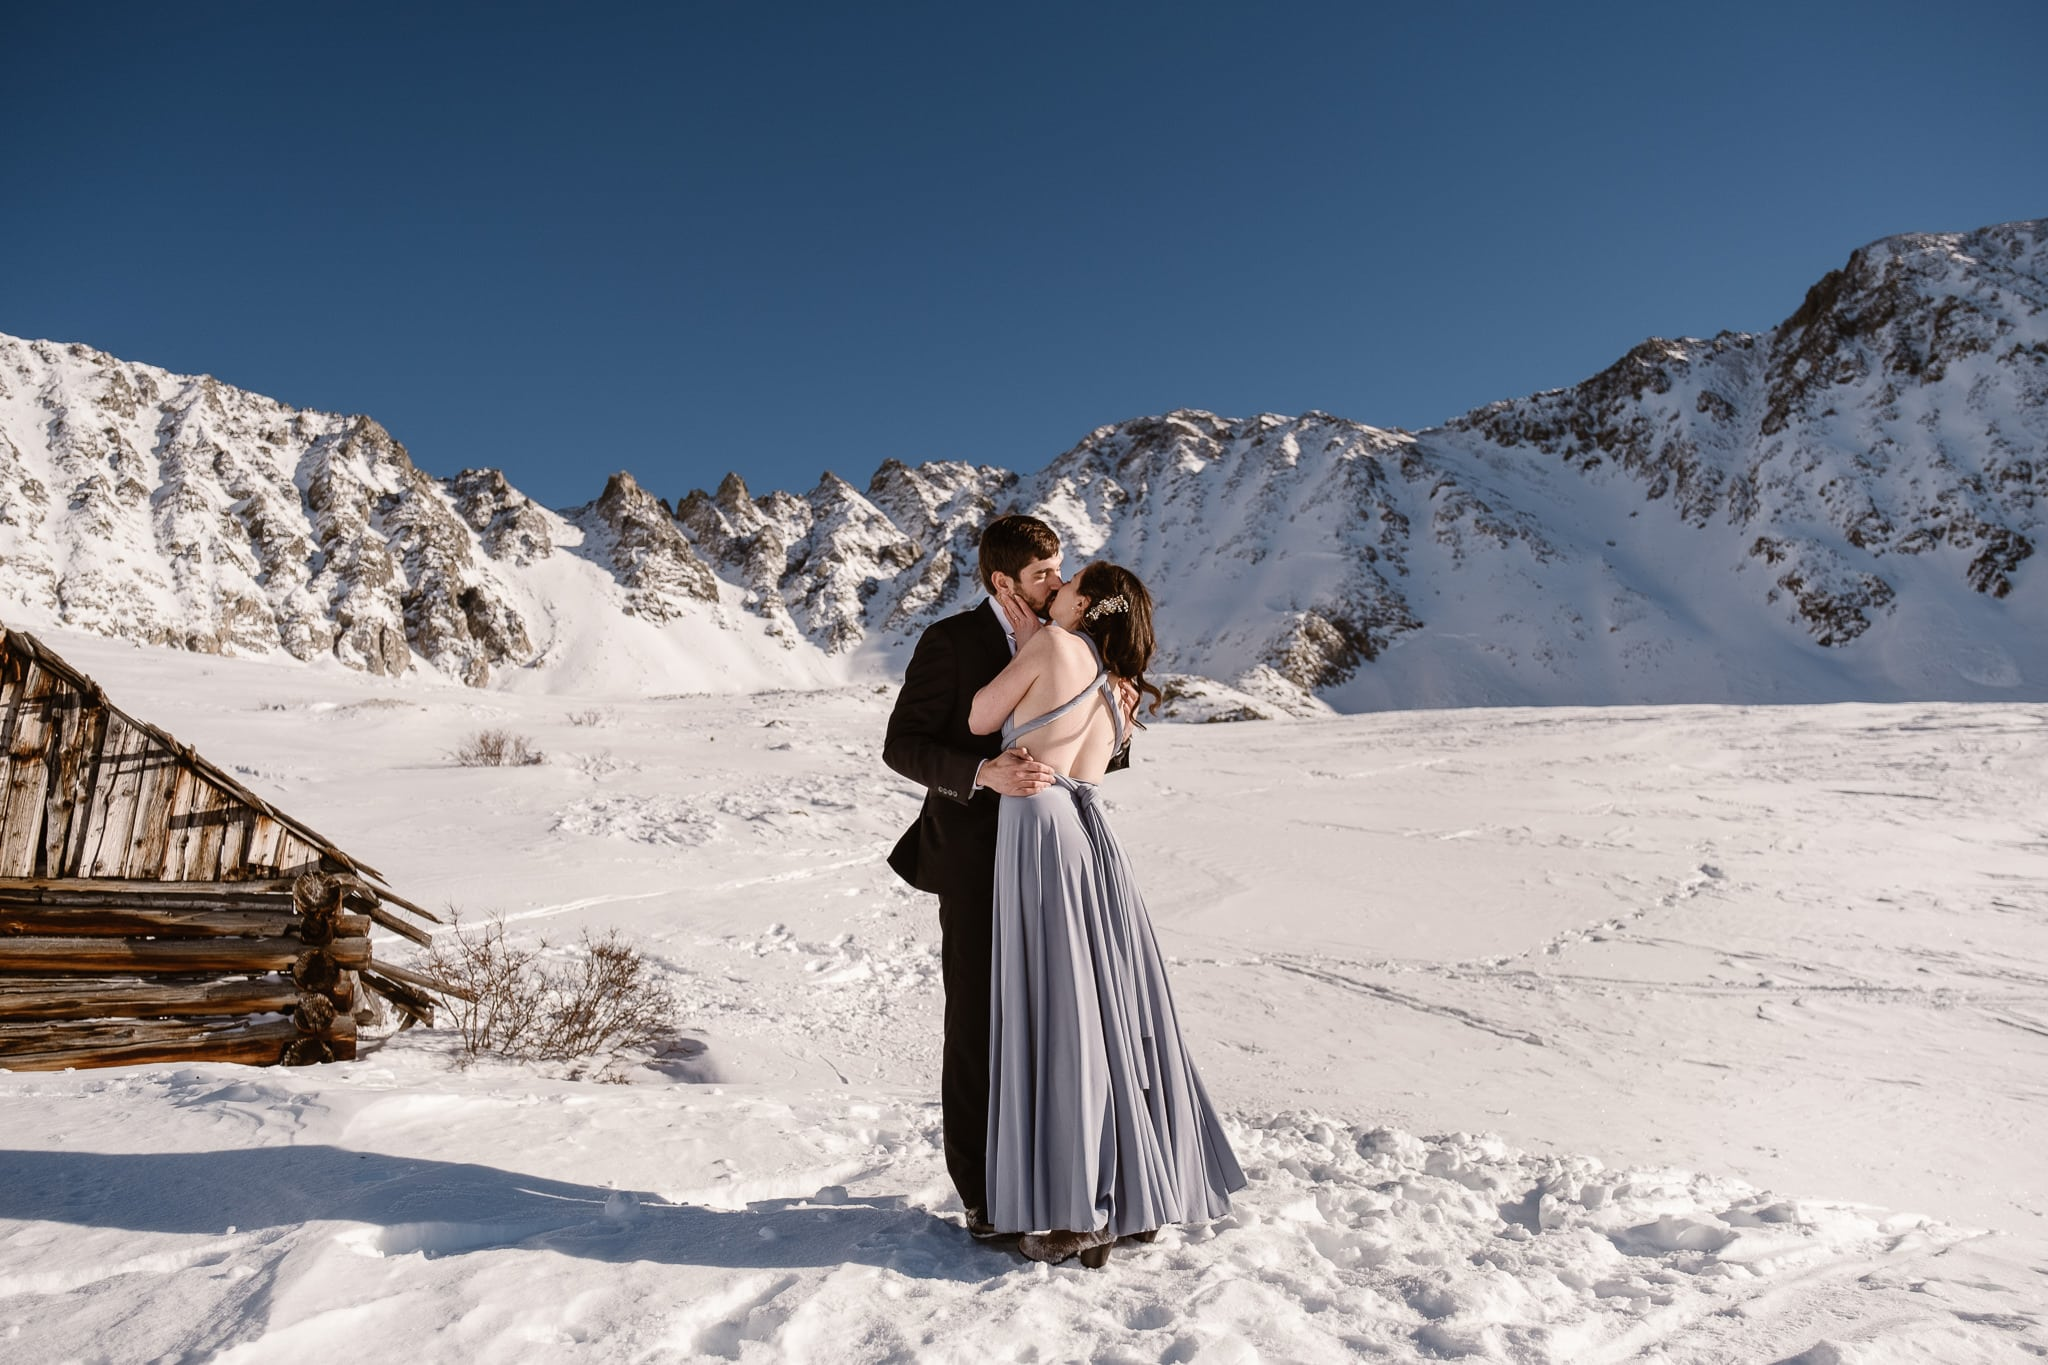 Backcountry skiing elopement in the snow-covered mountains of Colorado, bride wearing light blue wedding dress with open back